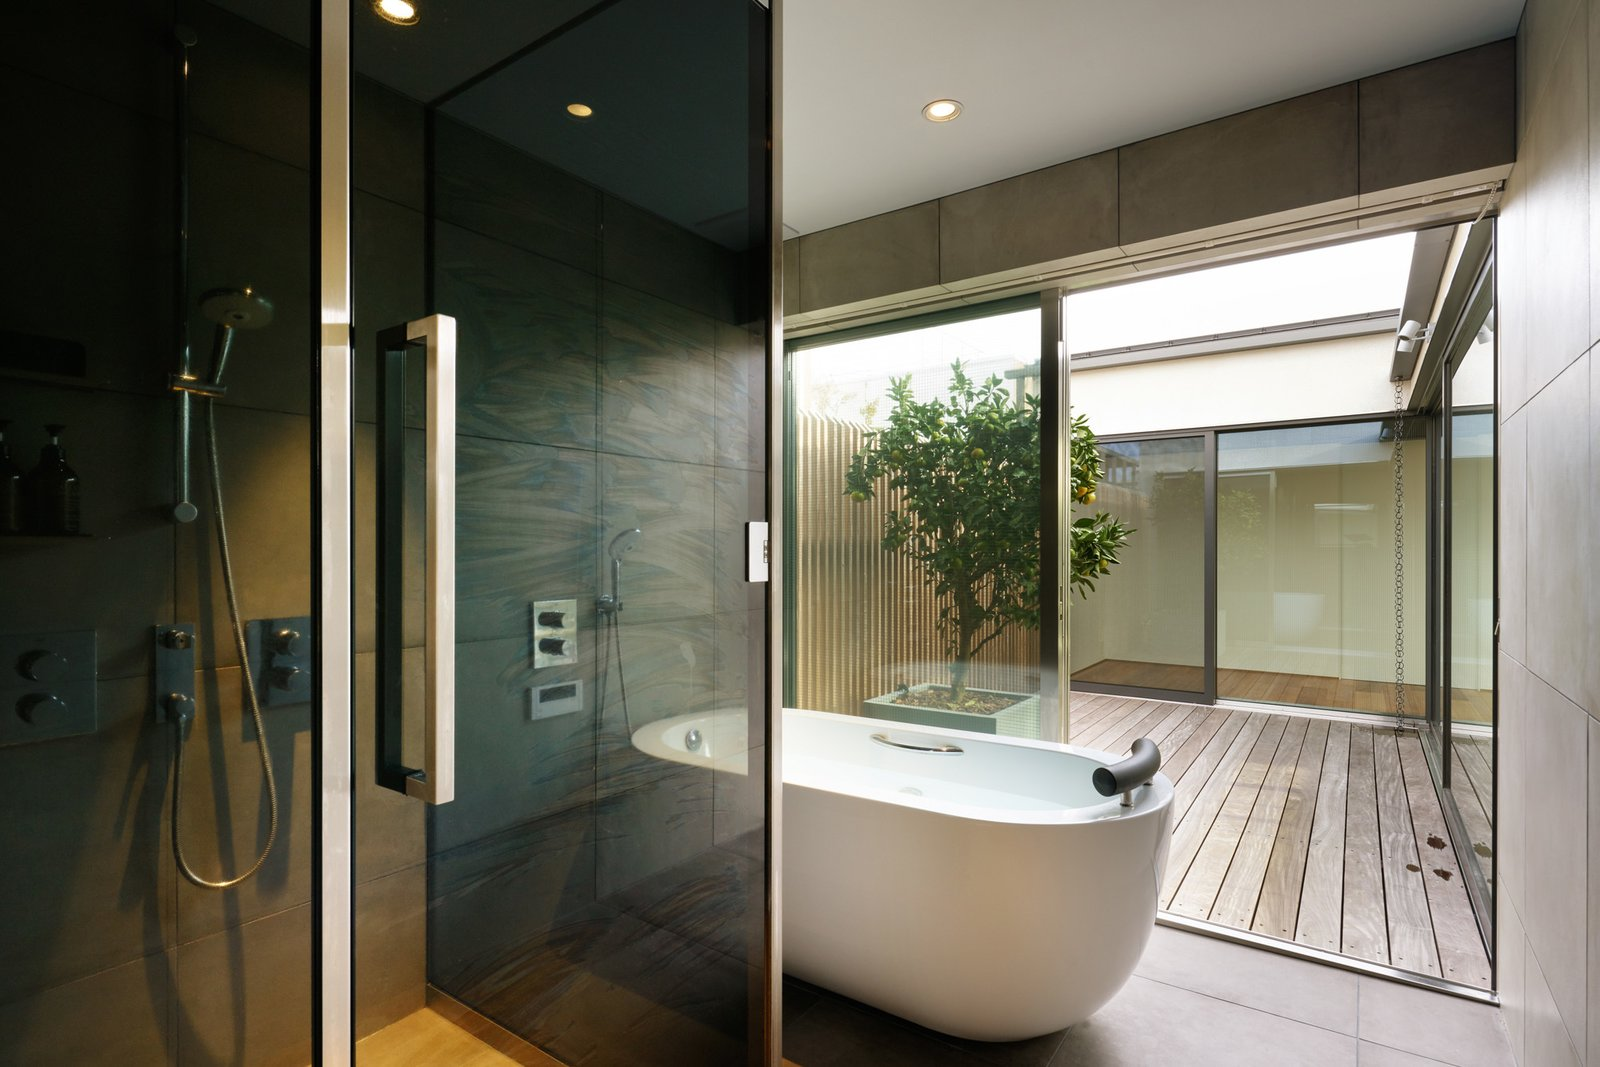 House in Yoga by Keiji Ashizawa Design bathroom